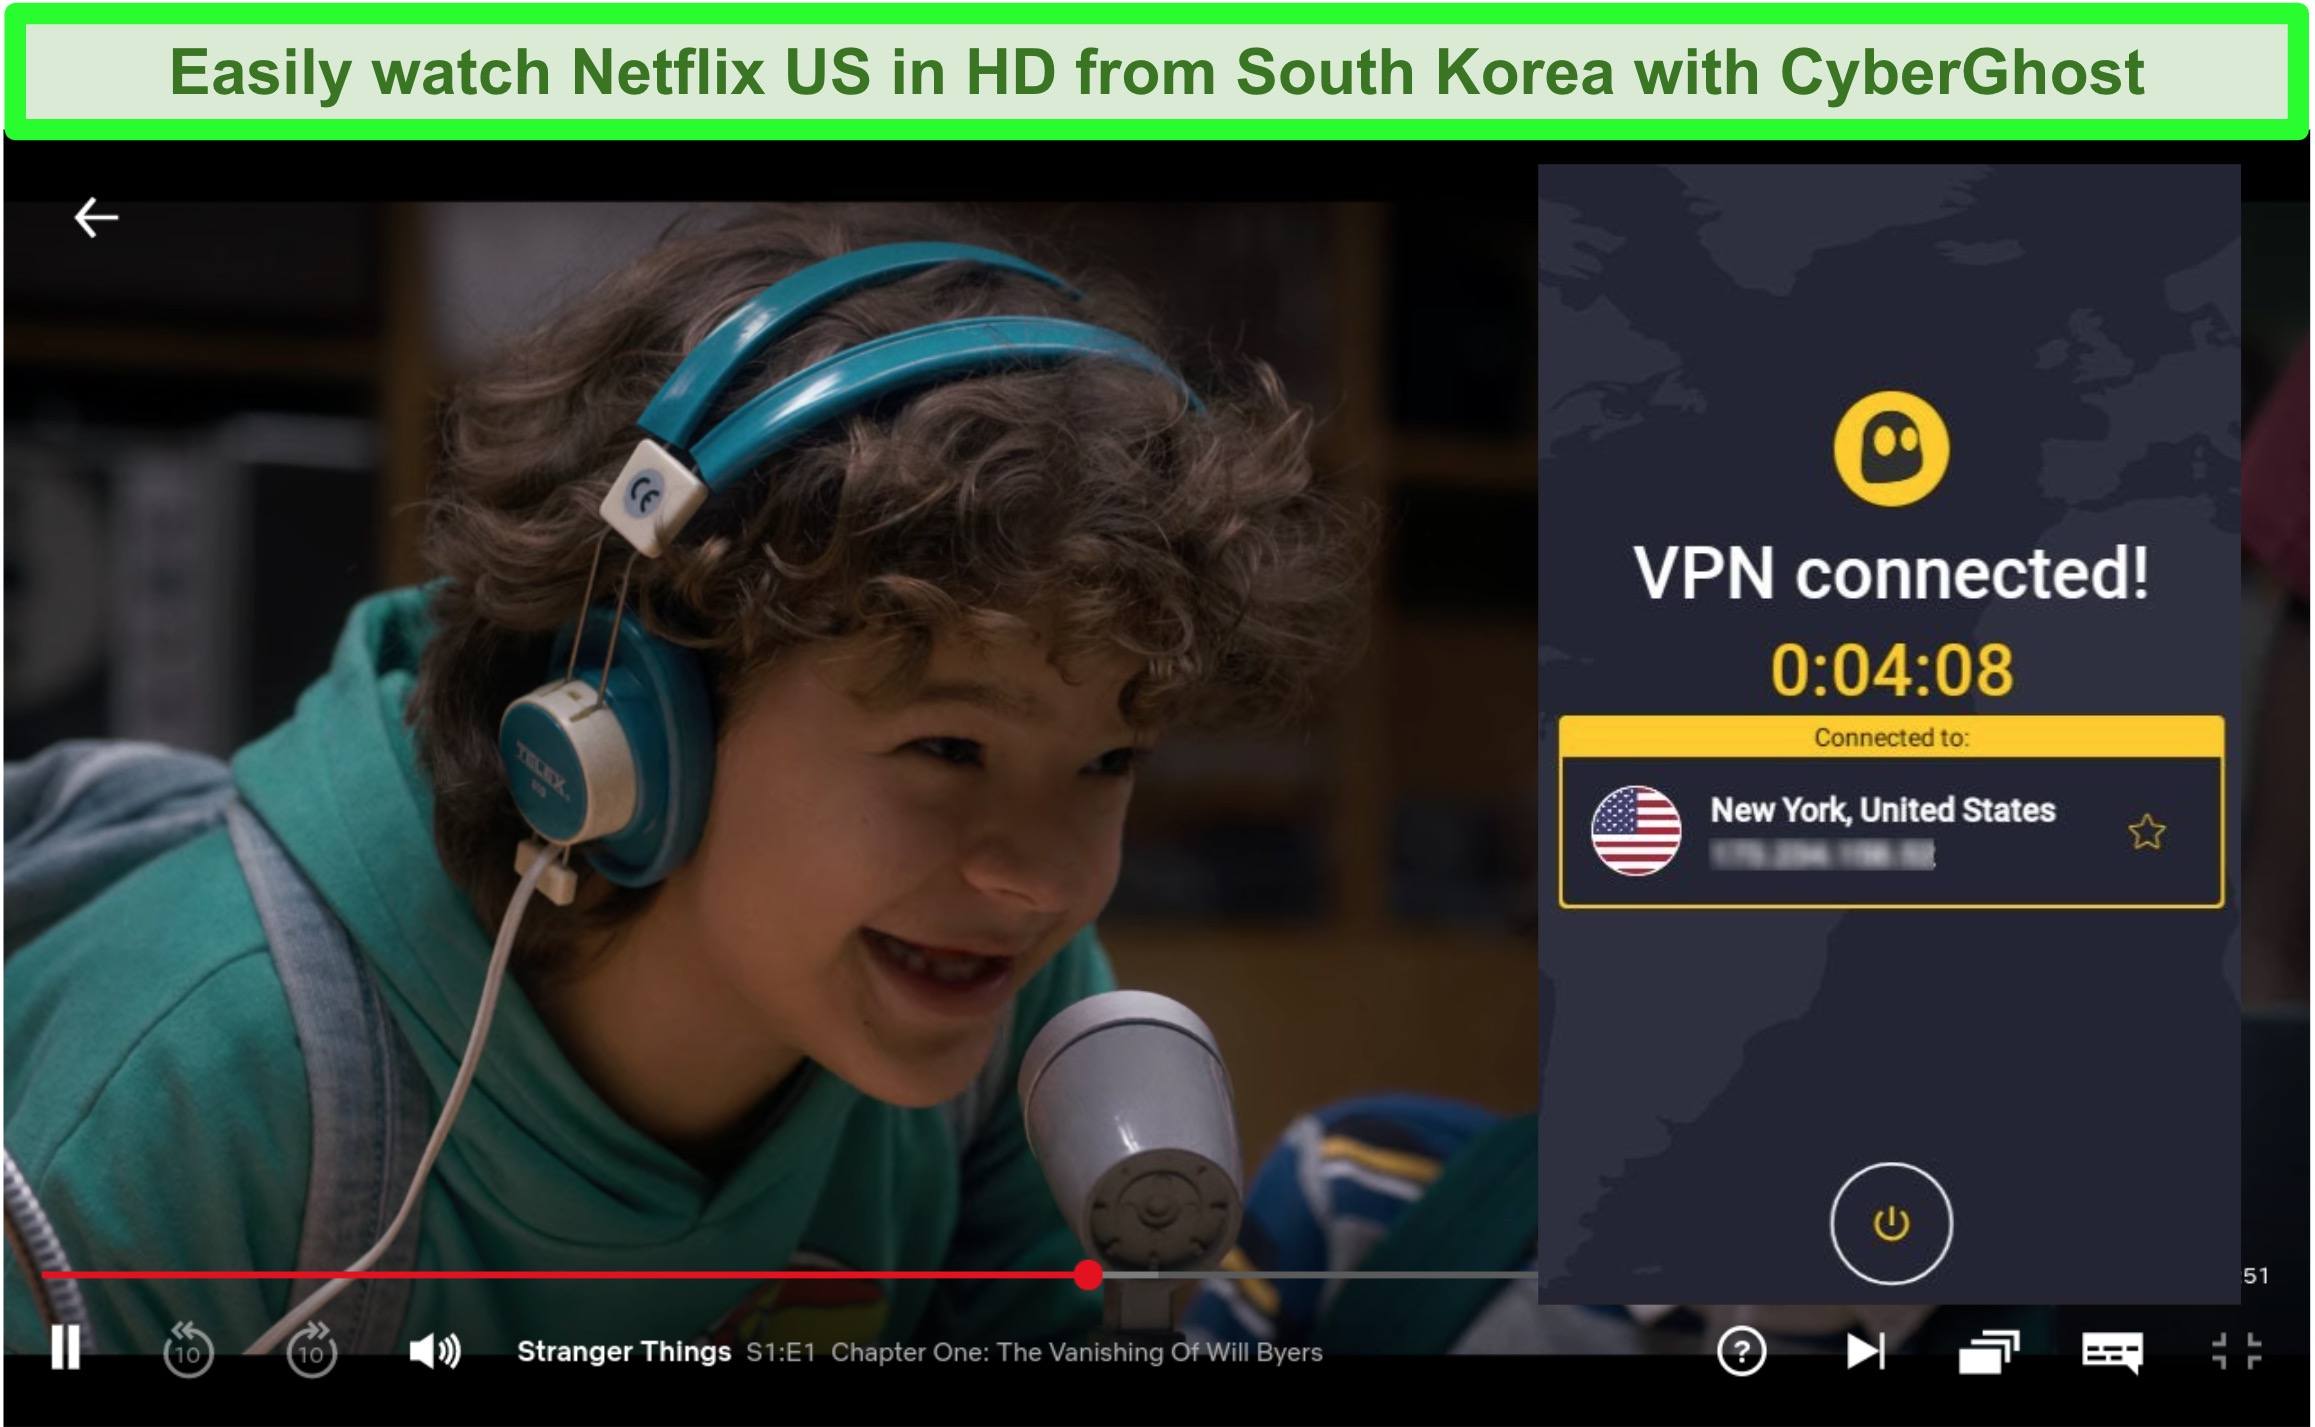 Screenshot of Stranger Things with CyberGhost connected to a New York server